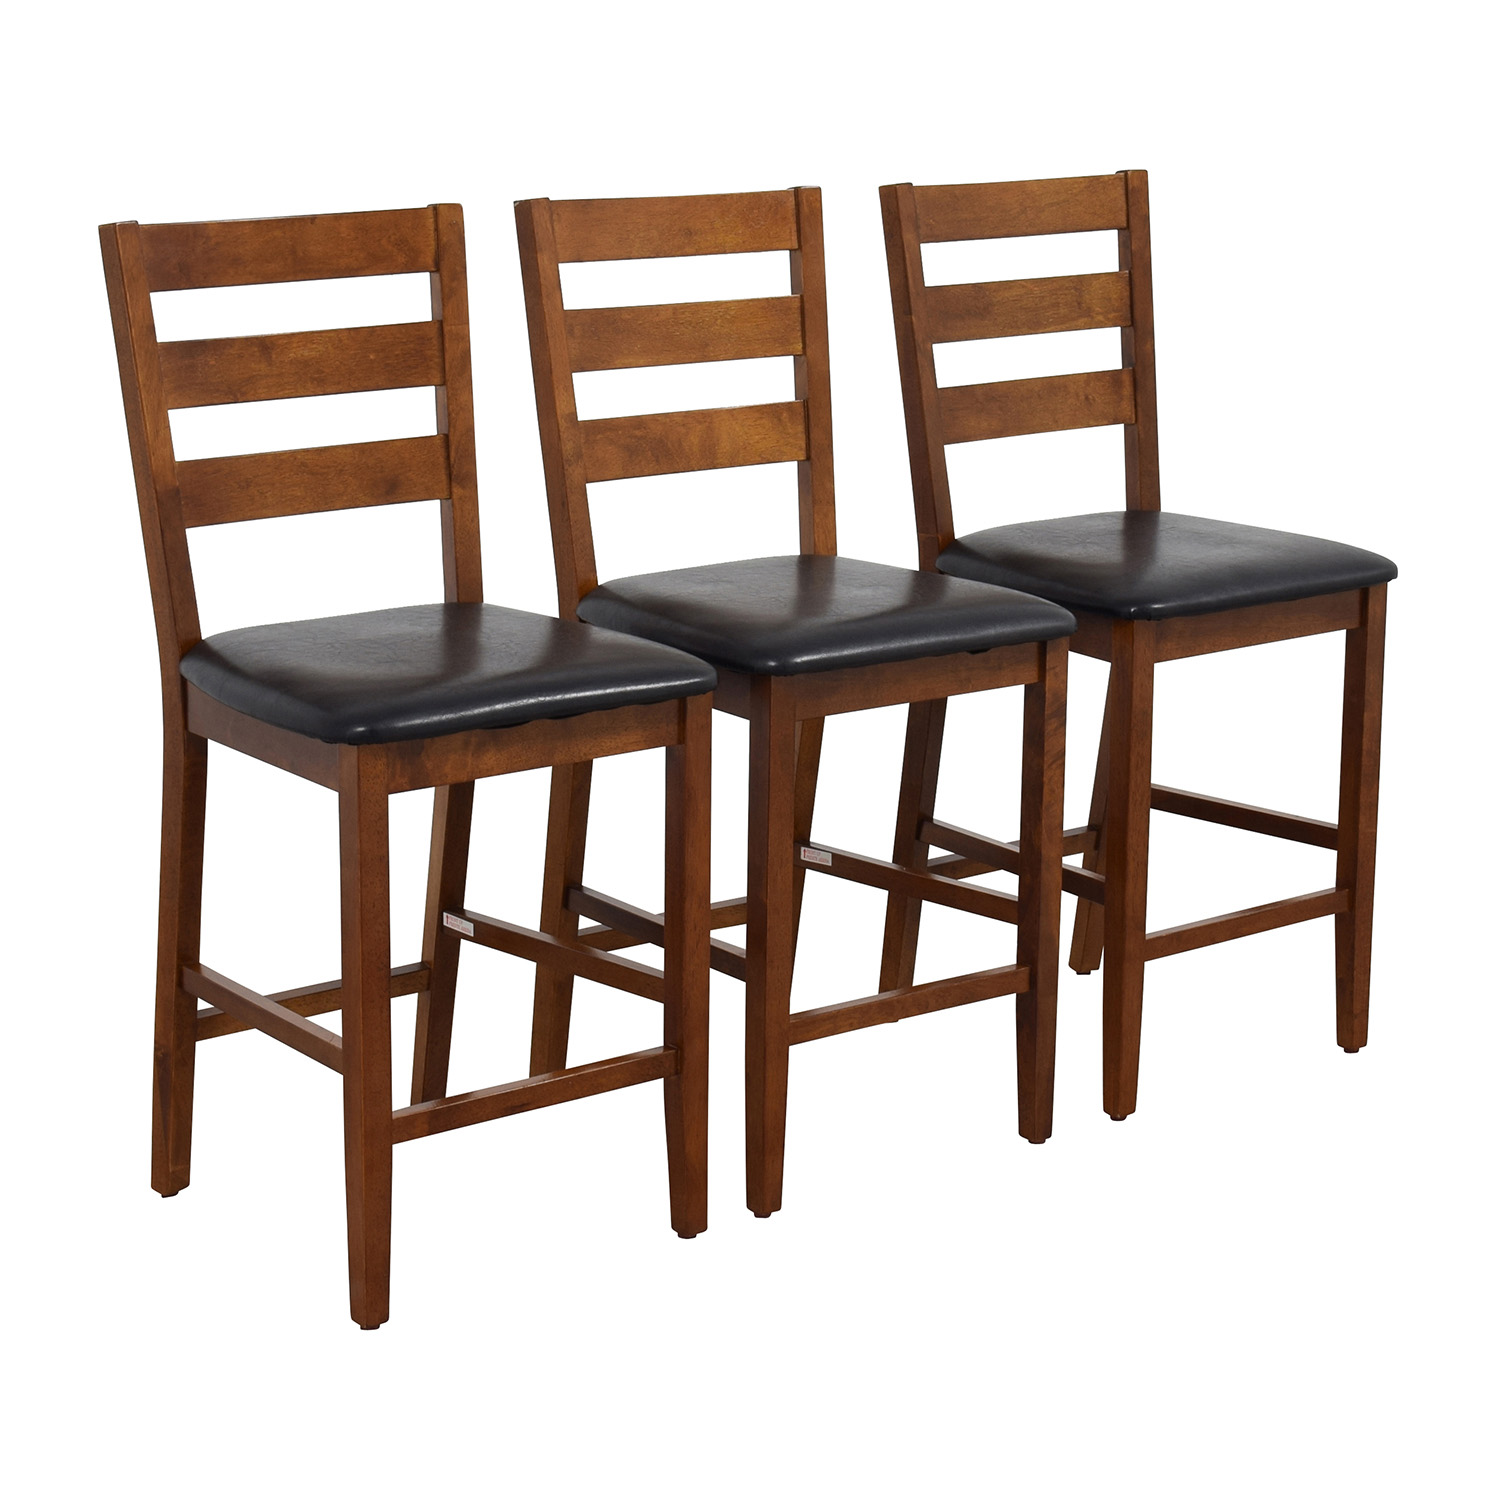 buy Better Homes and Garden Better Homes and Garden Dalton Park Chairs online